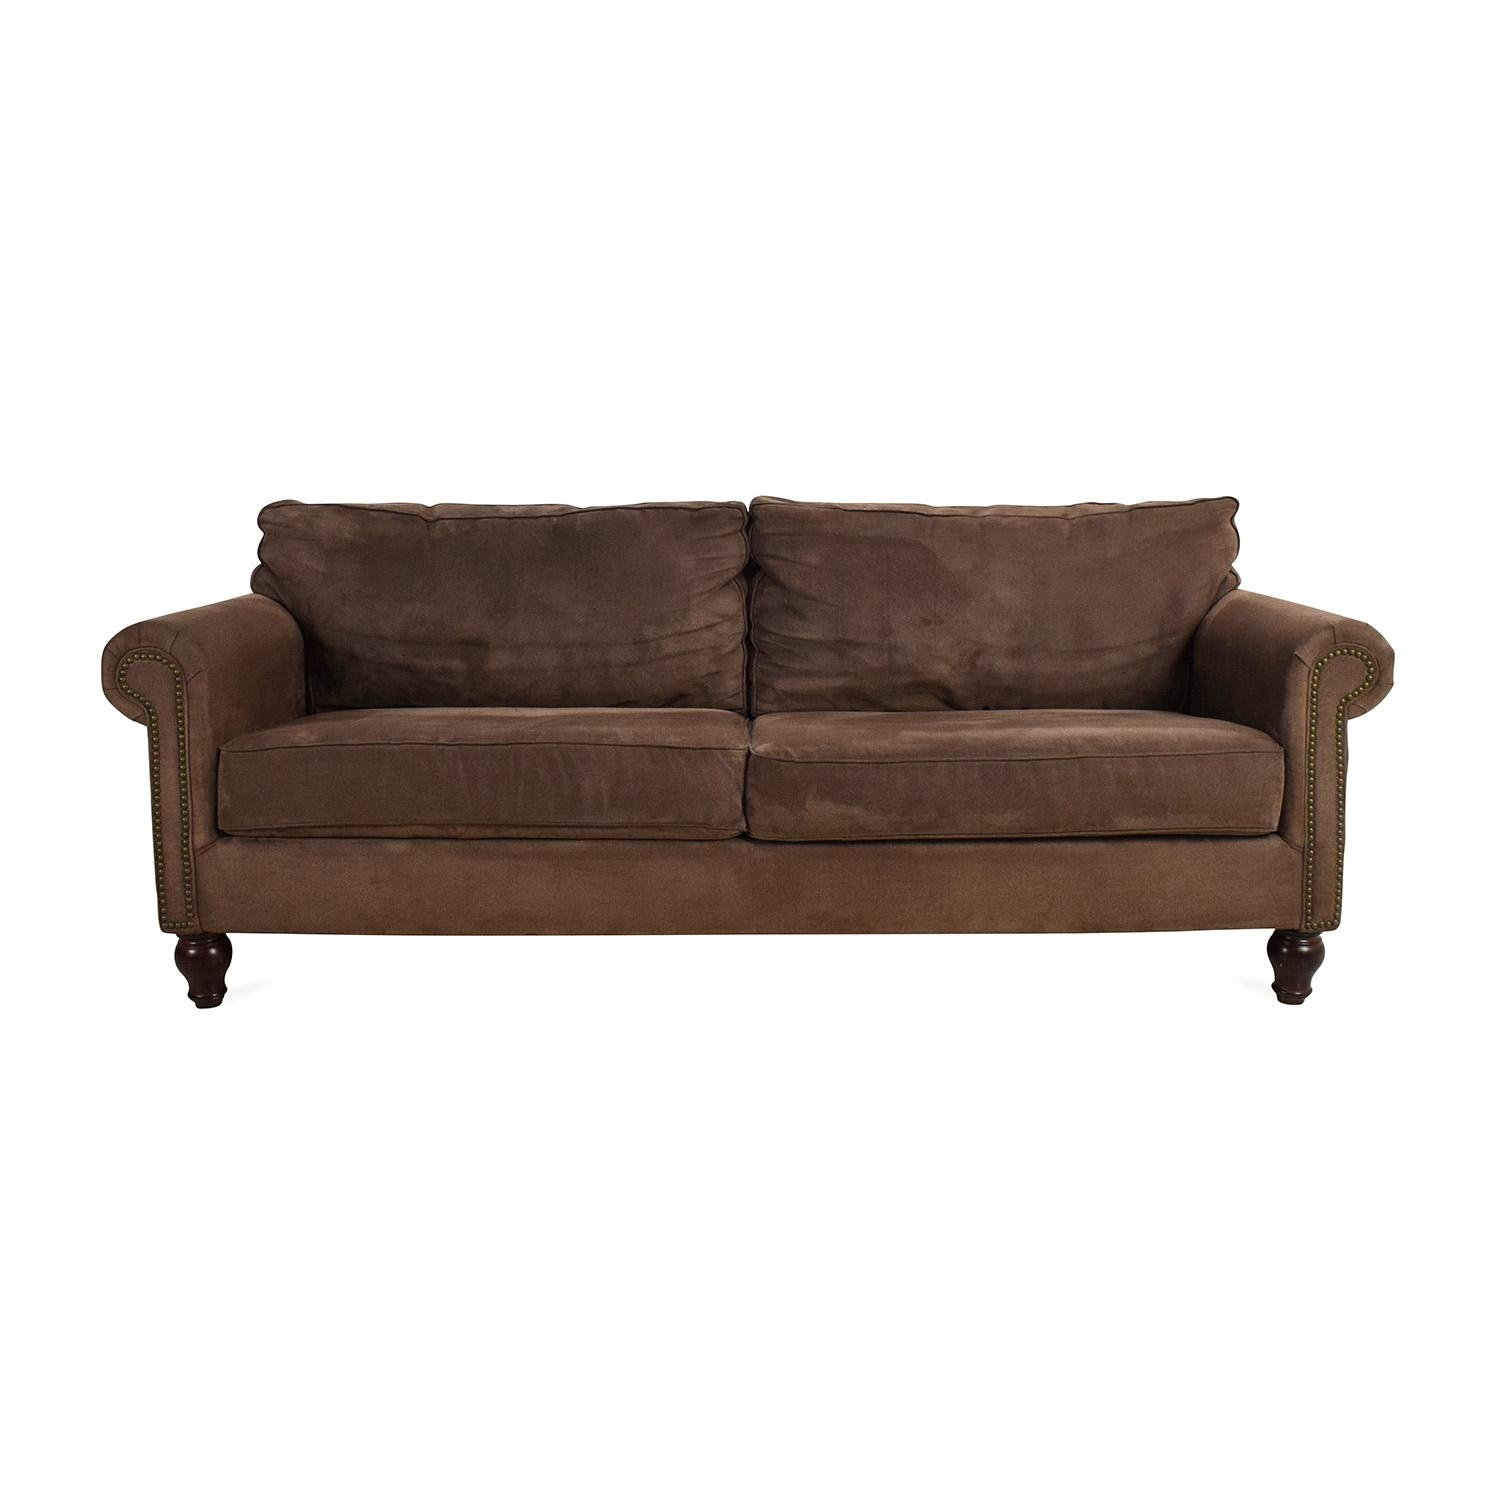 67% Off – Pier 1 Imports Pier 1 Alton Ecru Rolled Arm Sofa / Sofas Pertaining To Pier 1 Sofas (Image 5 of 20)